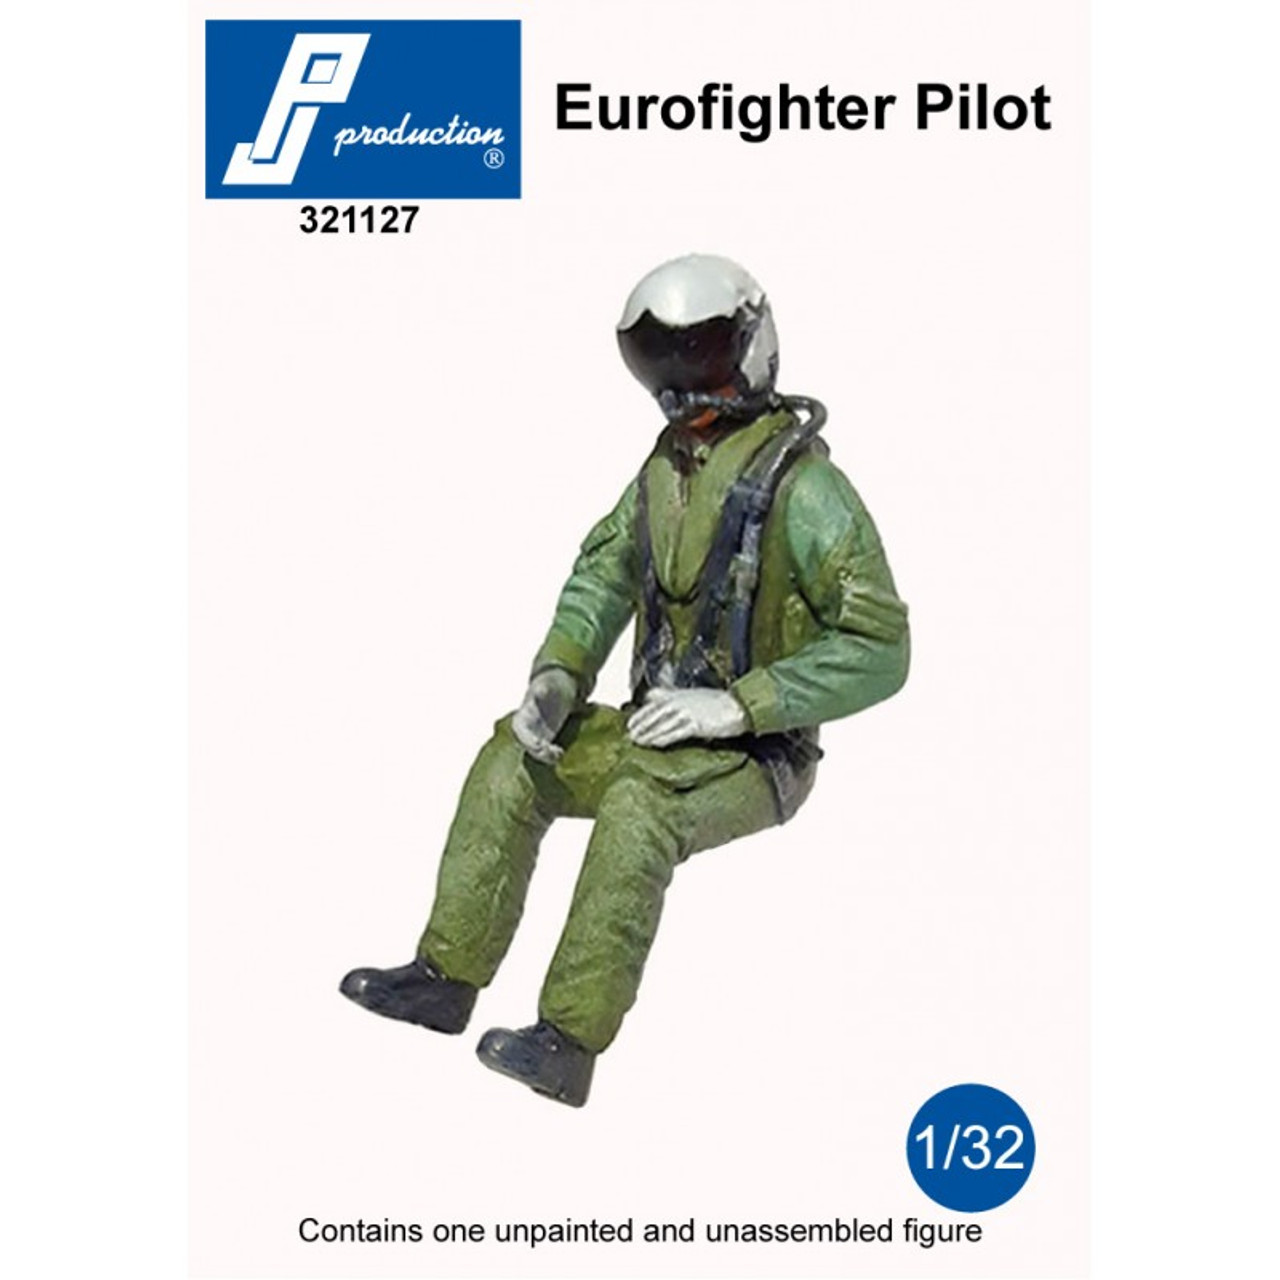 PJ Productions Eurofighter Pilot Seated in Aircraft Figure 1:32 (PJP321127)